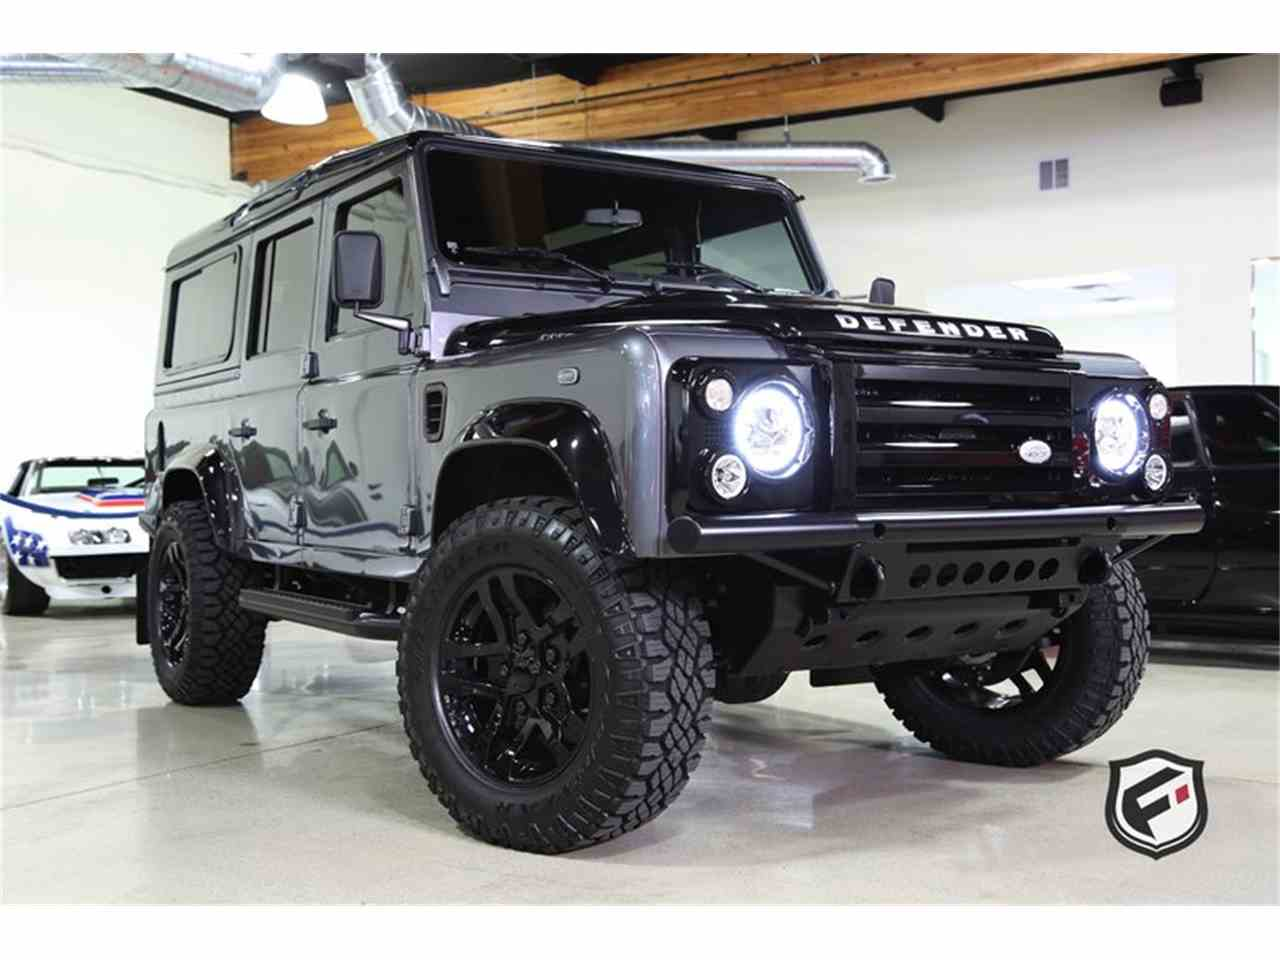 Large Picture of '94 Land Rover Defender located in Chatsworth California Auction Vehicle Offered by Fusion Luxury Motors - JSI7